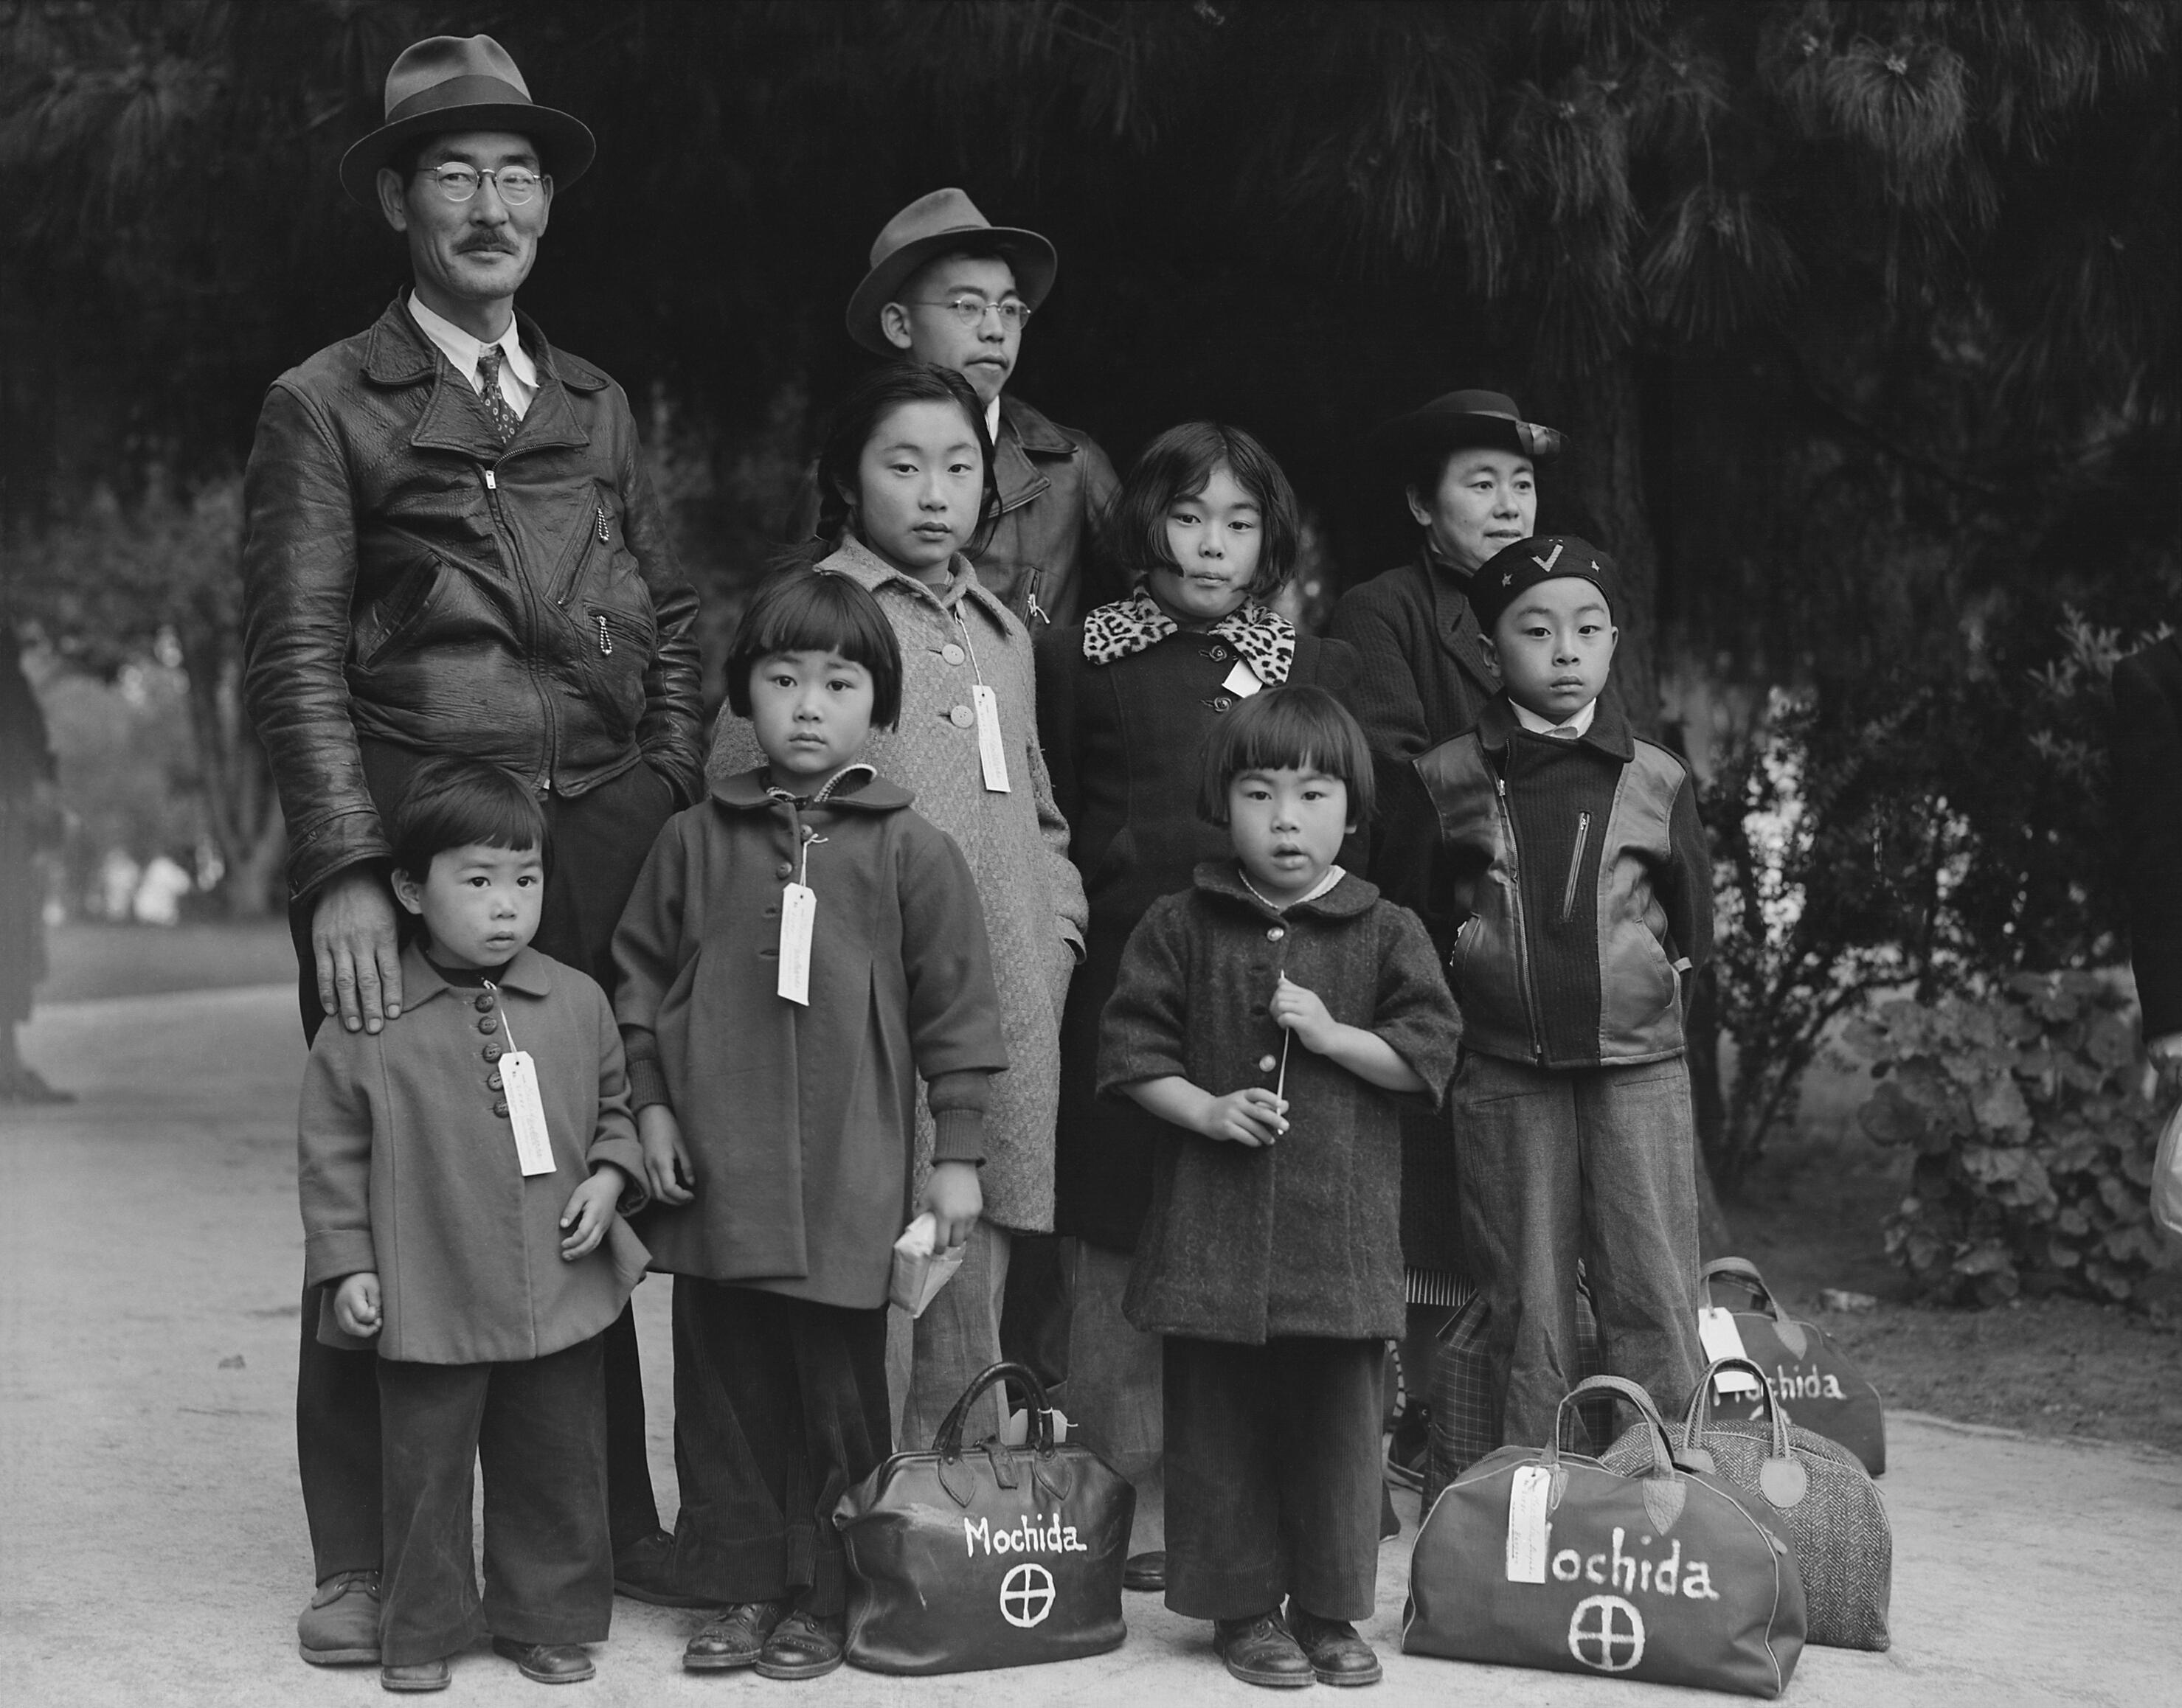 Members of the Mochida family awaiting evacuation bus. Mochida operated a nursery and five greenhouses on a two-acre site in Eden Township. Hayward, California. 8 May 1942 (Dorothea Lange) [2958x2316]